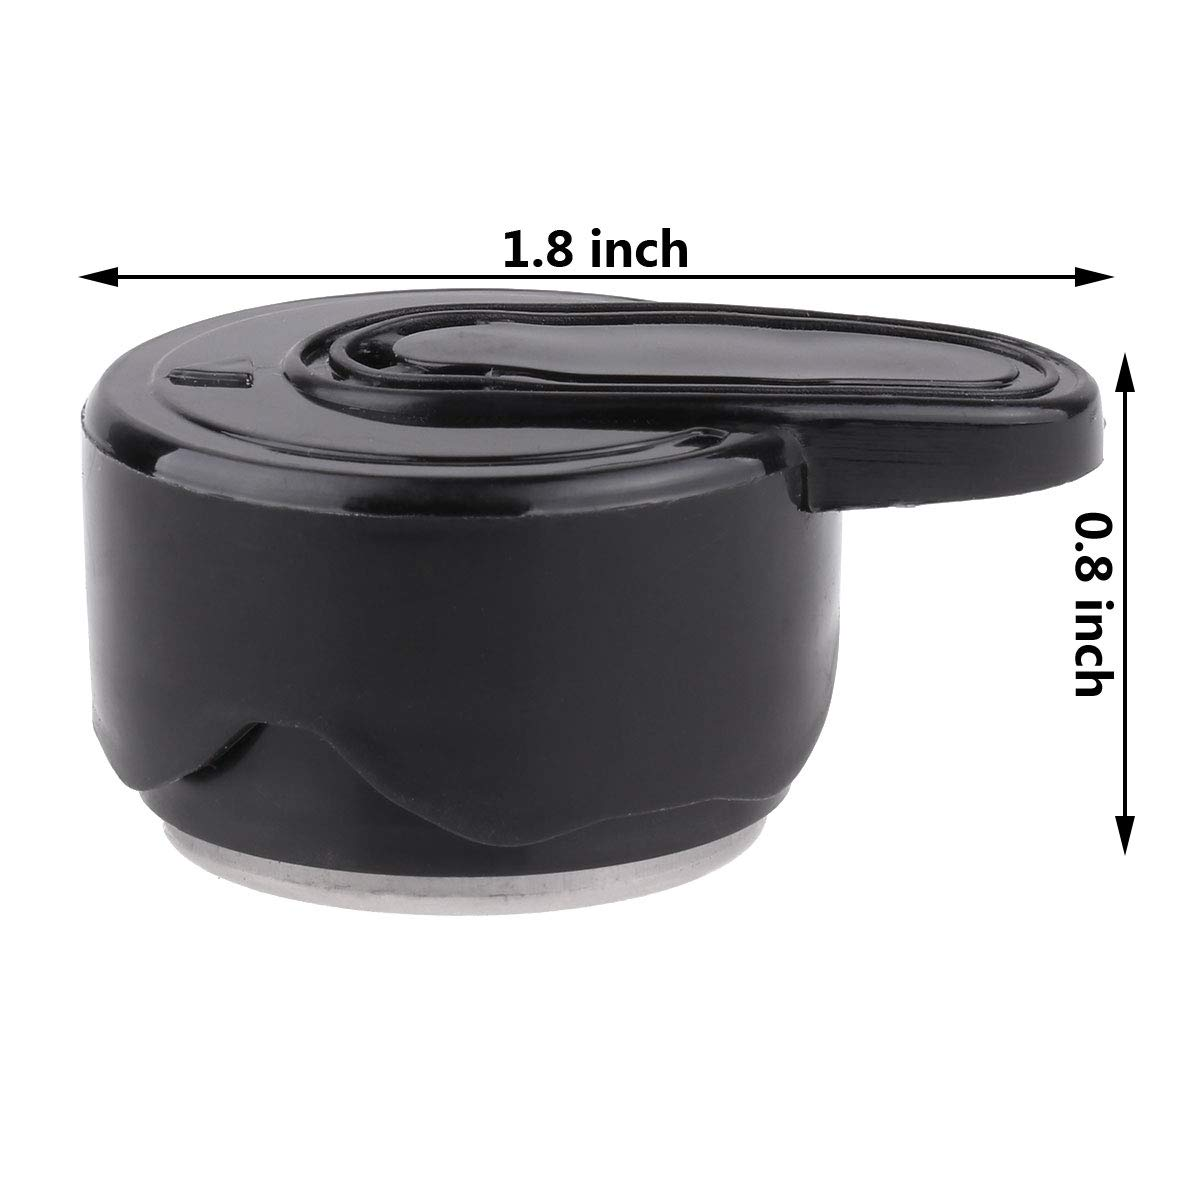 CHICTRY Steam Release Valve Programmable Pressure Cooker Valve for Instant Pot Duo Mini 3 Qt Duo Plus Mini 3 Qt DUO60 6 Qt and DUO80 8 Qt Black Type G by CHICTRY (Image #7)